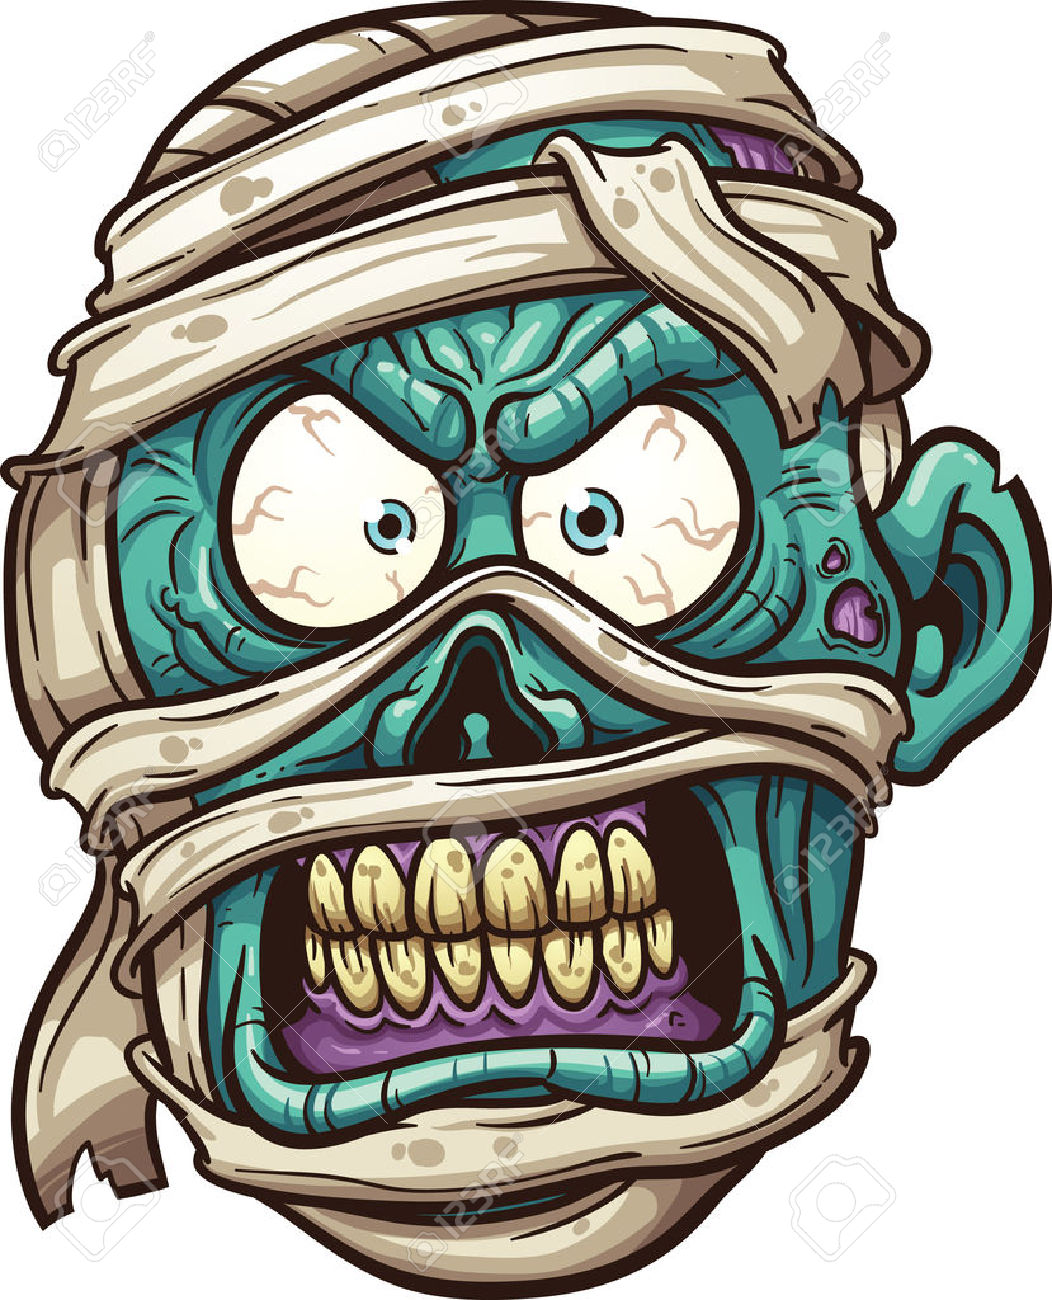 Cartoon Mummy Pictures | Free download on ClipArtMag